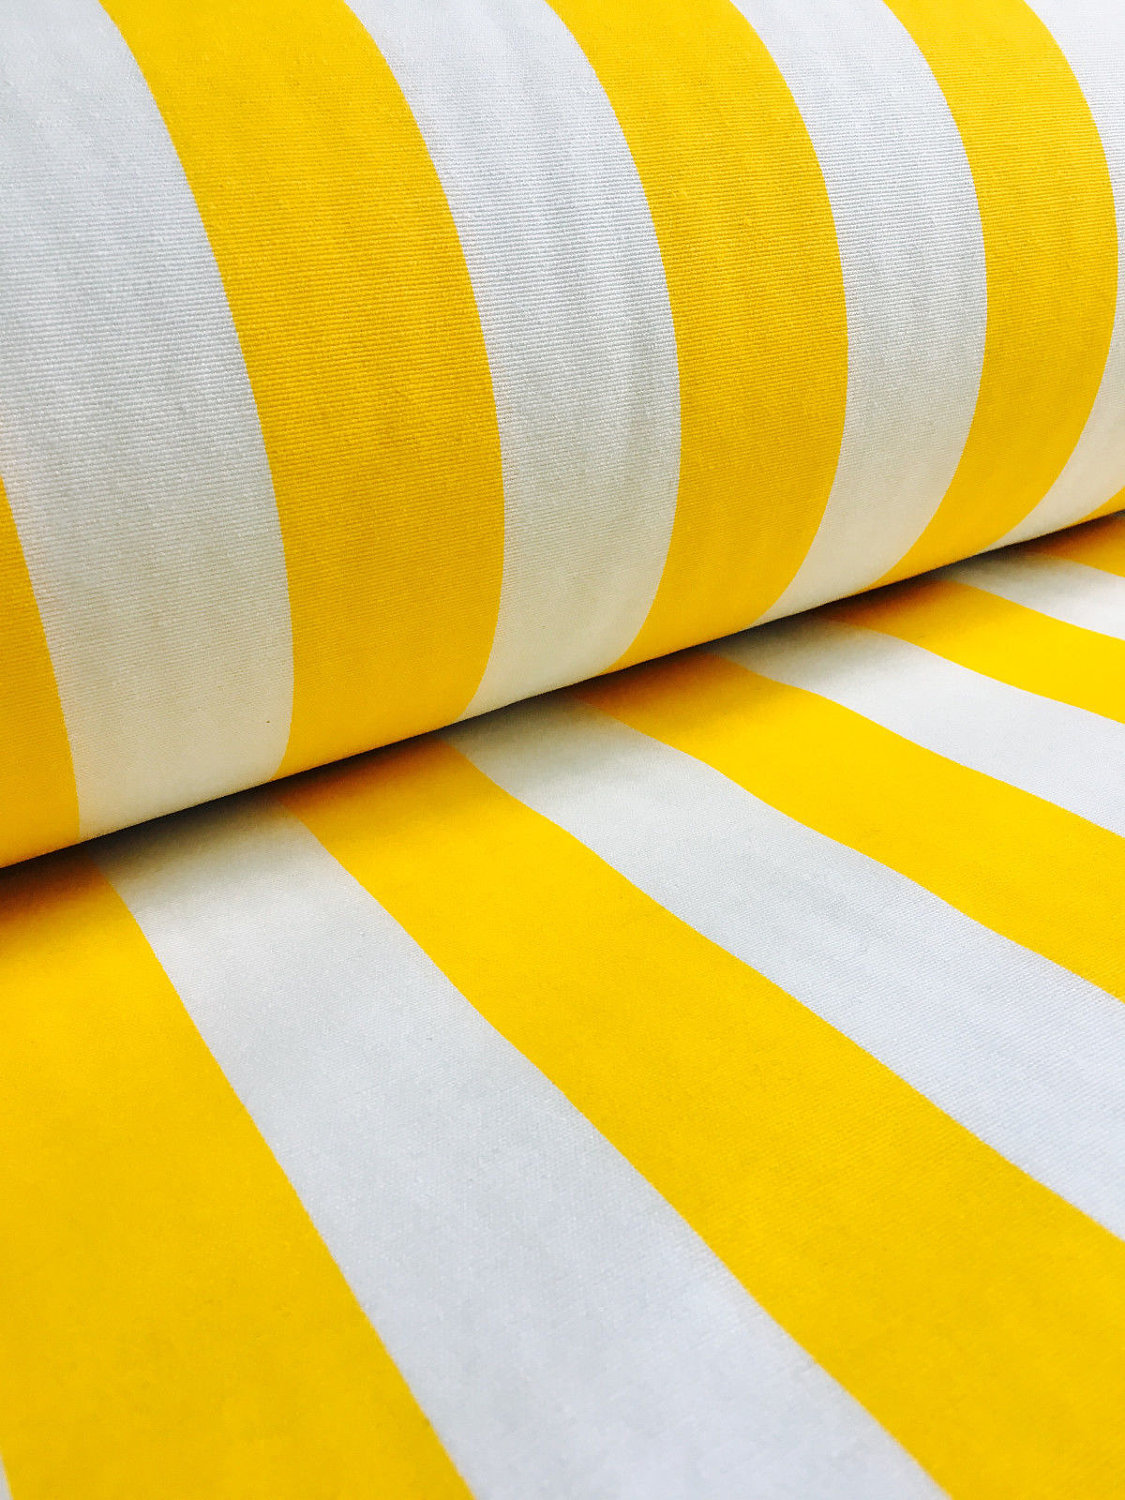 yellow-white-striped-fabric-sofia-stripes-curtain-upholstery-material-140cm-wide-594bf5e91.jpg